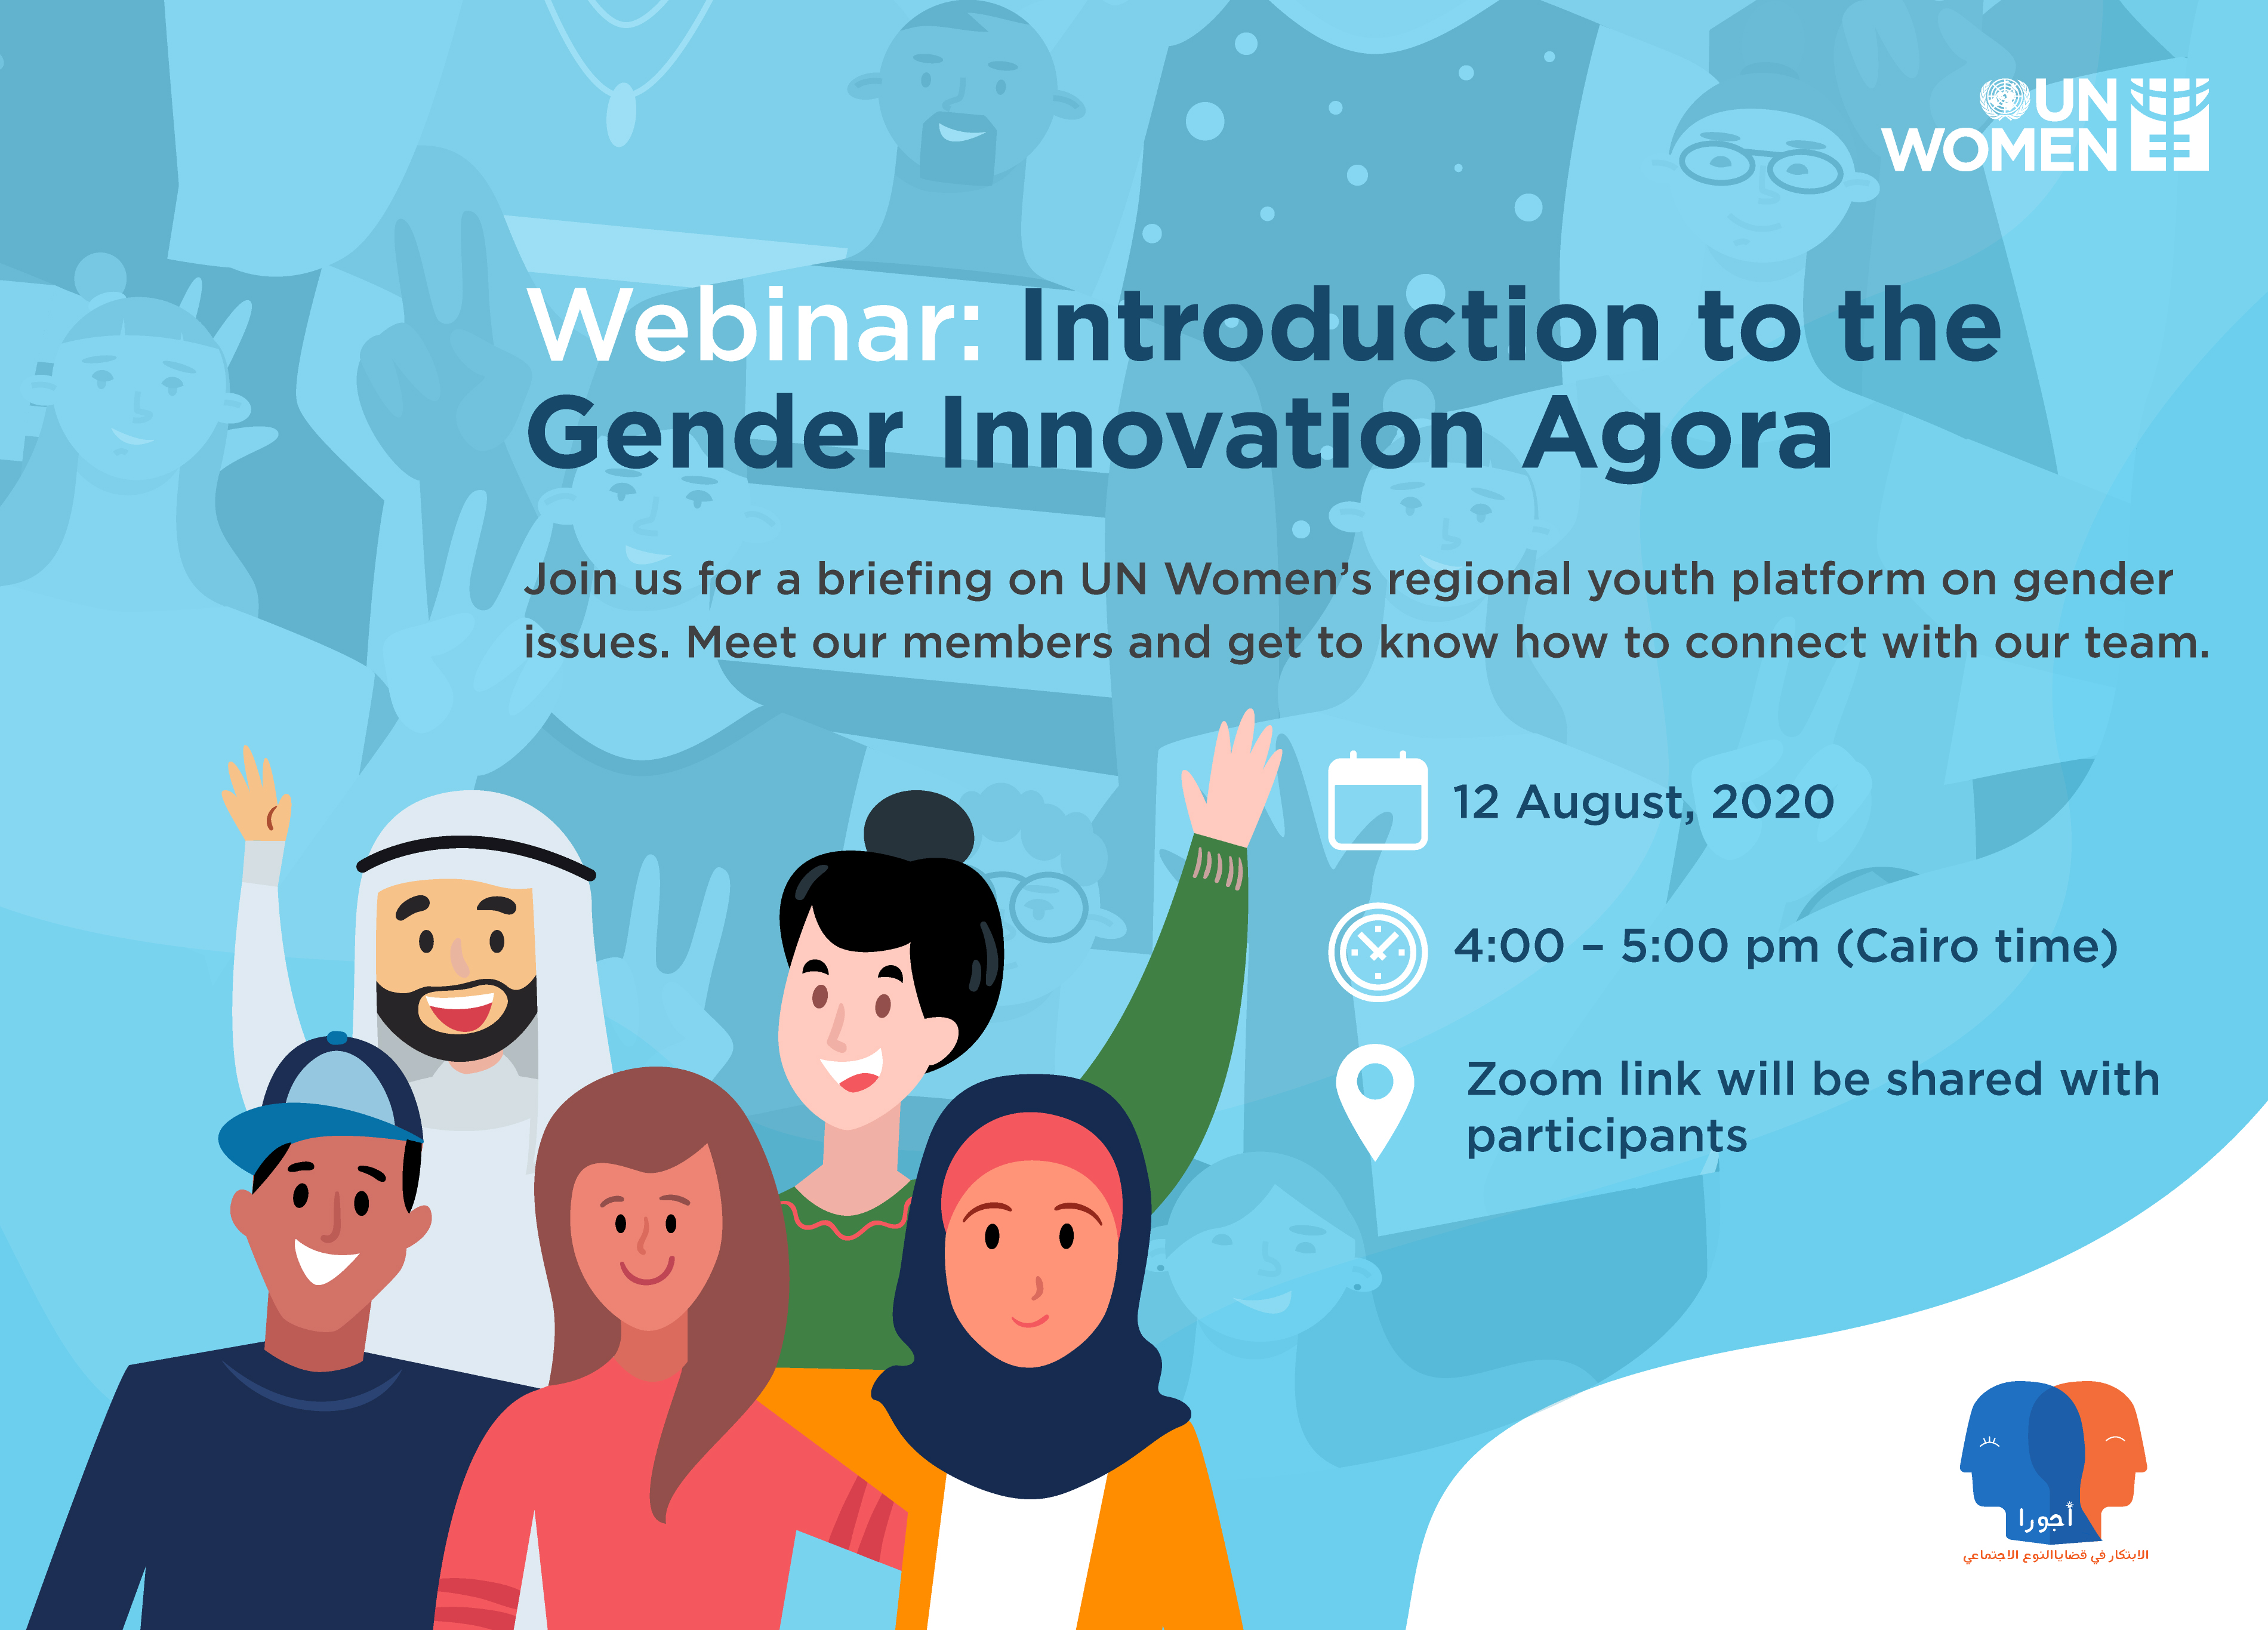 Webinar: Introduction to the Gender Innovation Agora